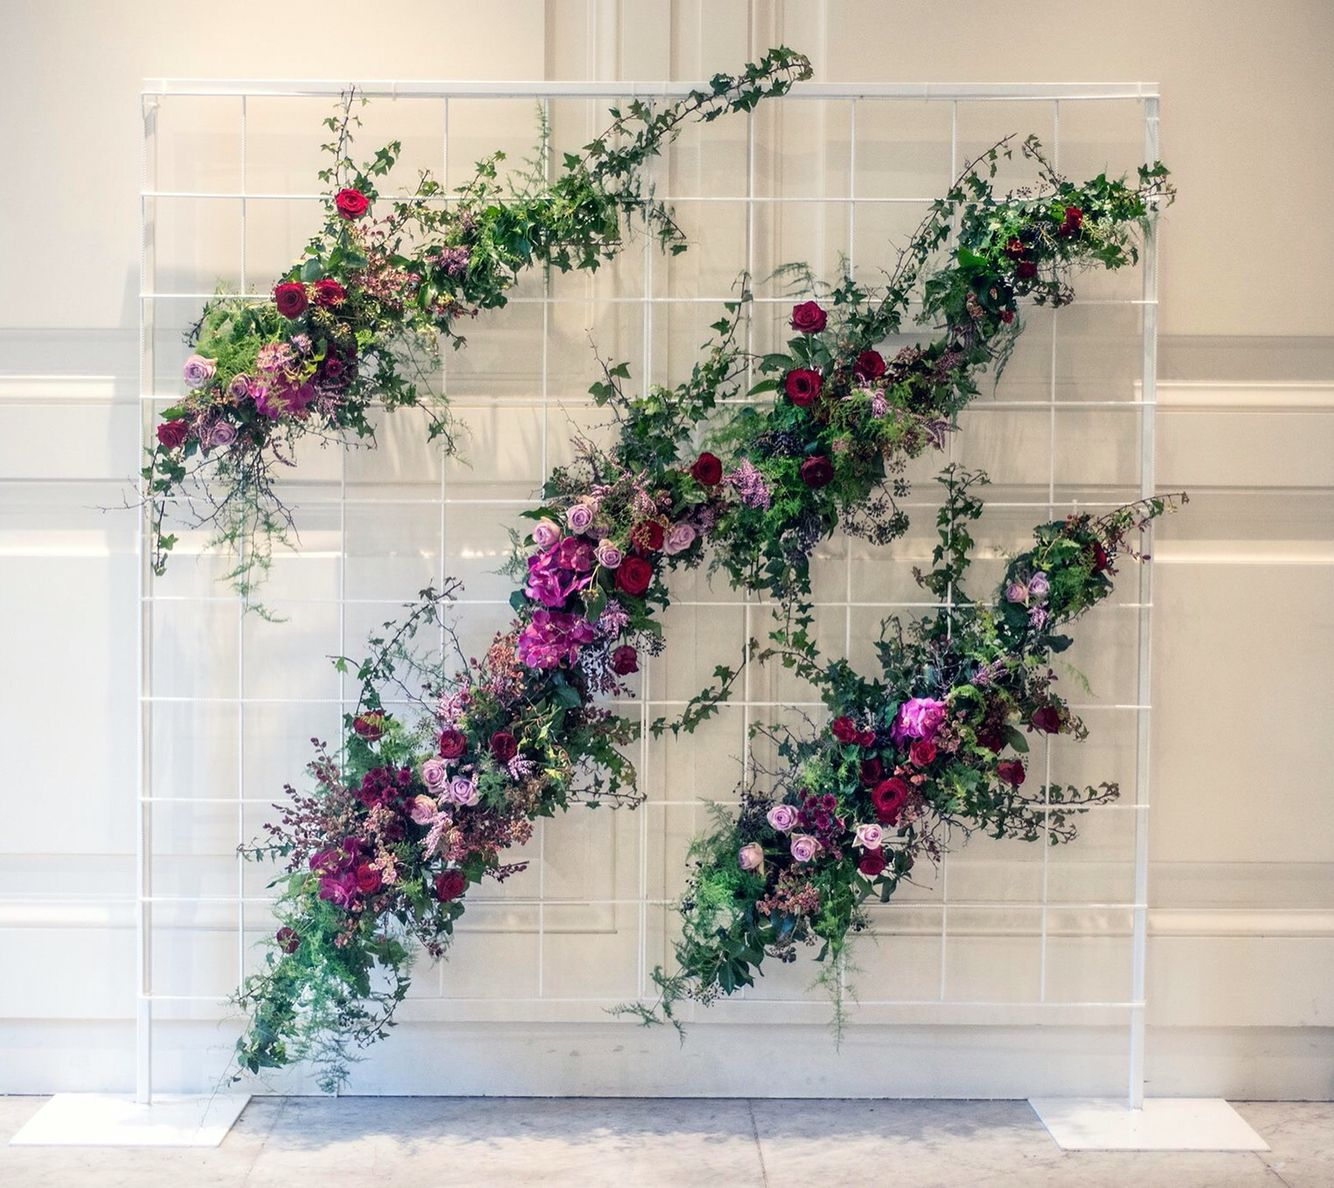 Flower Wall Wedding Altar: Flower Wall. Wild Climbing Florals & Foliage Over A White